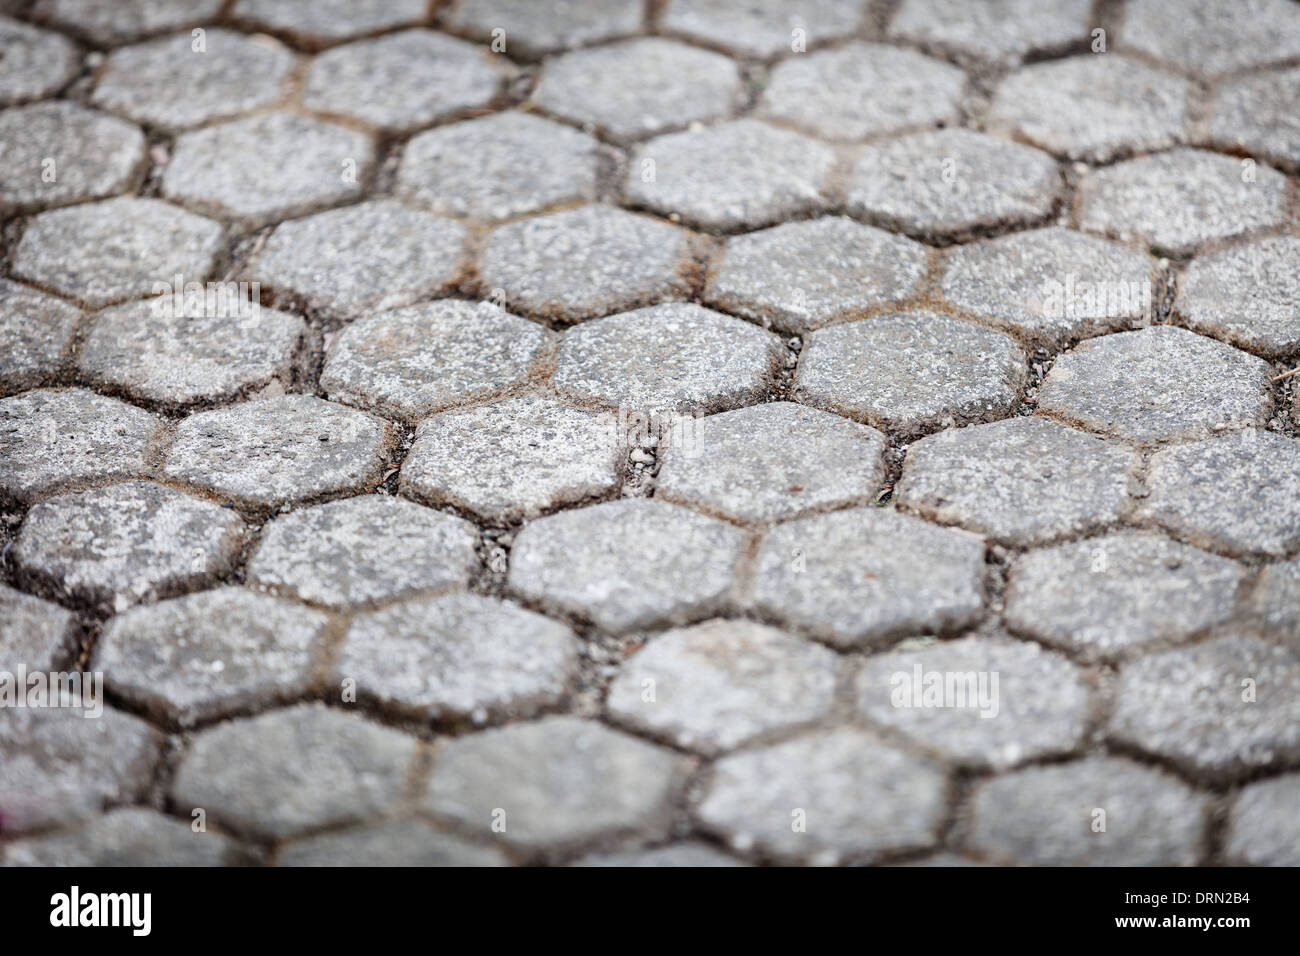 Stone pavements near the temple close up. Indonesia, Bali - Stock Image